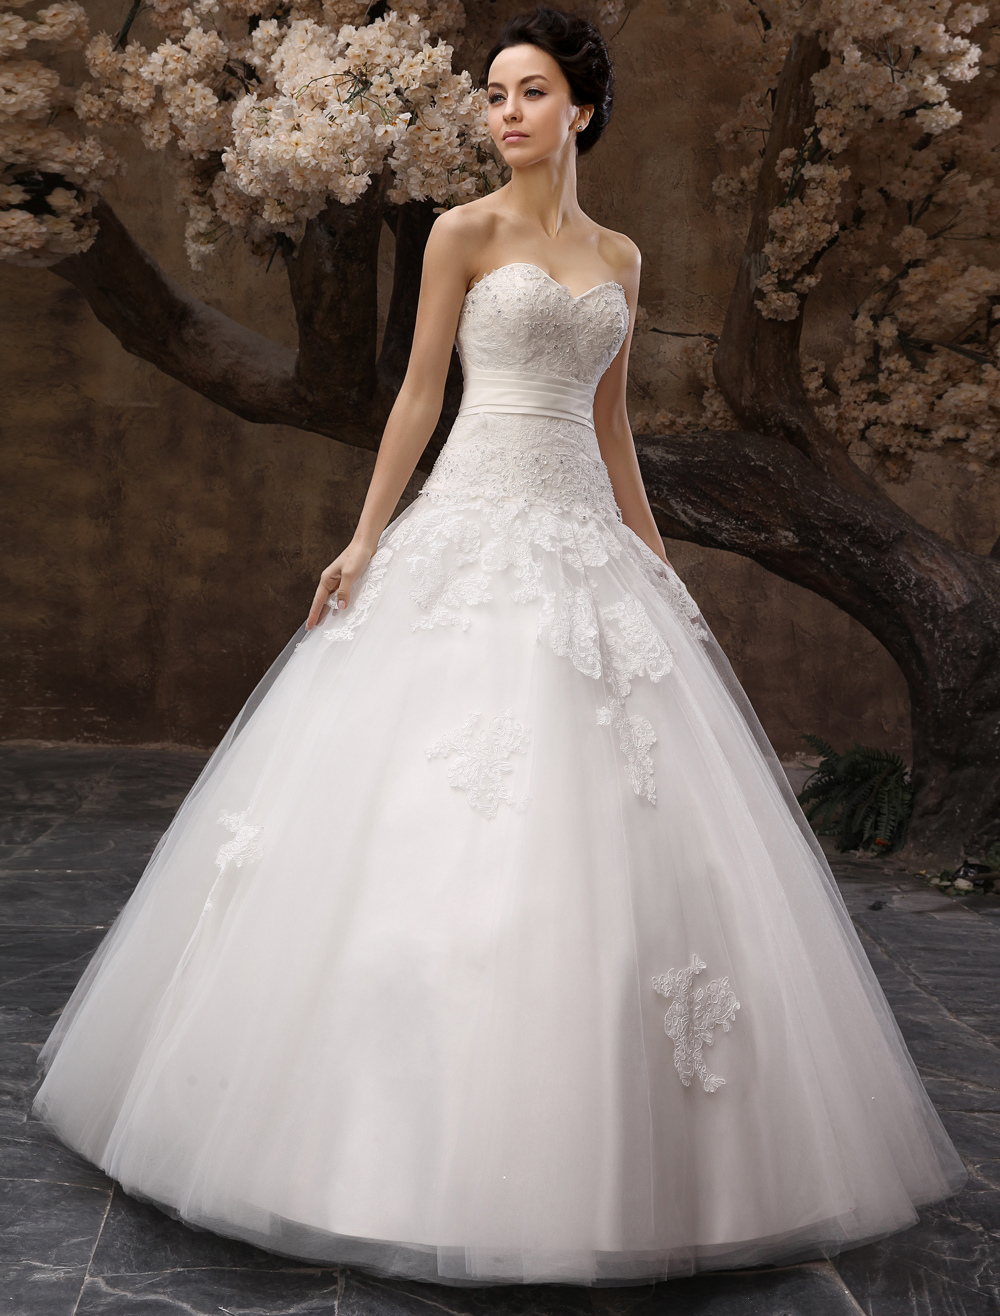 Floor-Length White Bridal Ball Gown Wedding Gown with Sweetheart Neck Applique